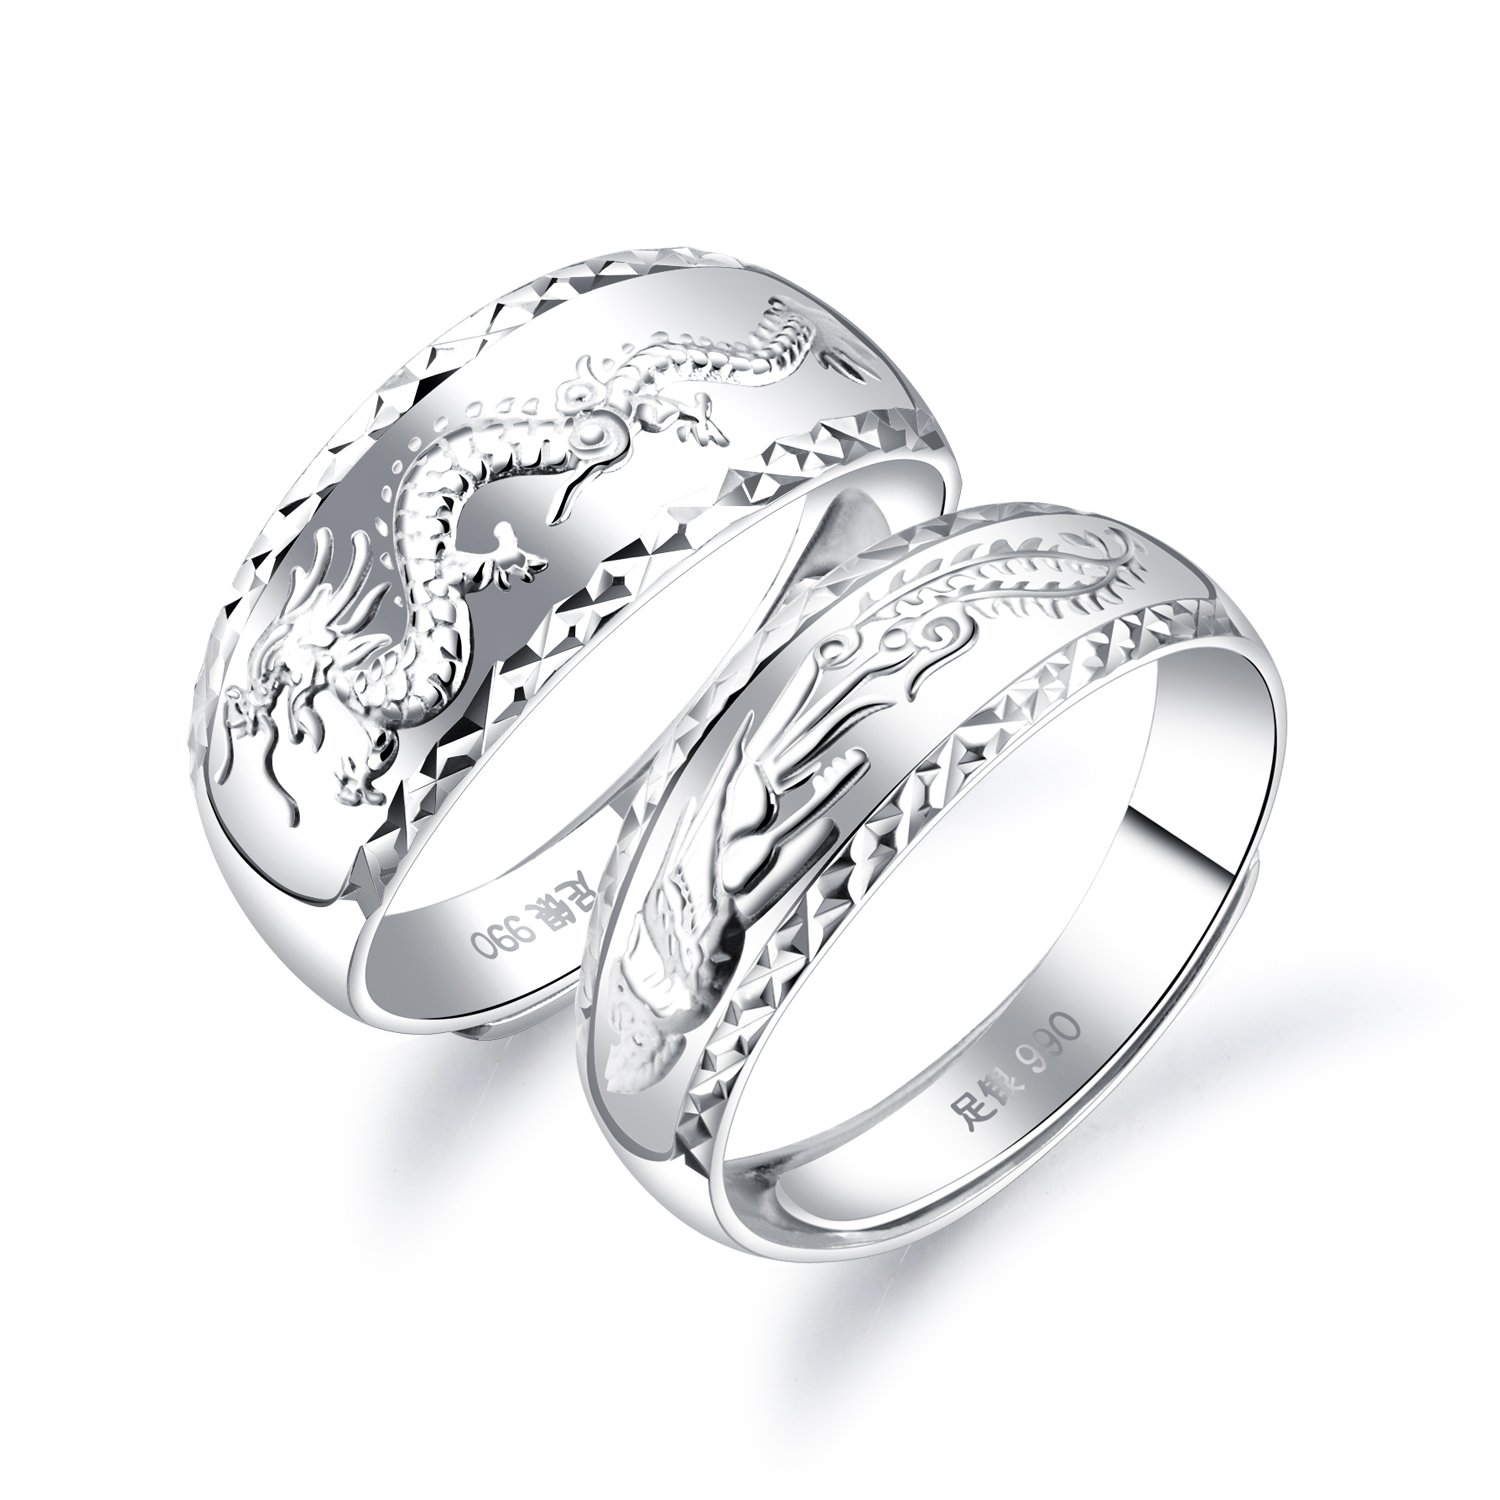 Fate Love 990 Silver Chinese Feature Lucky Dragon Phoenix Carved Couple Ring Wedding Band Set Adjustable Size 010FL S-J